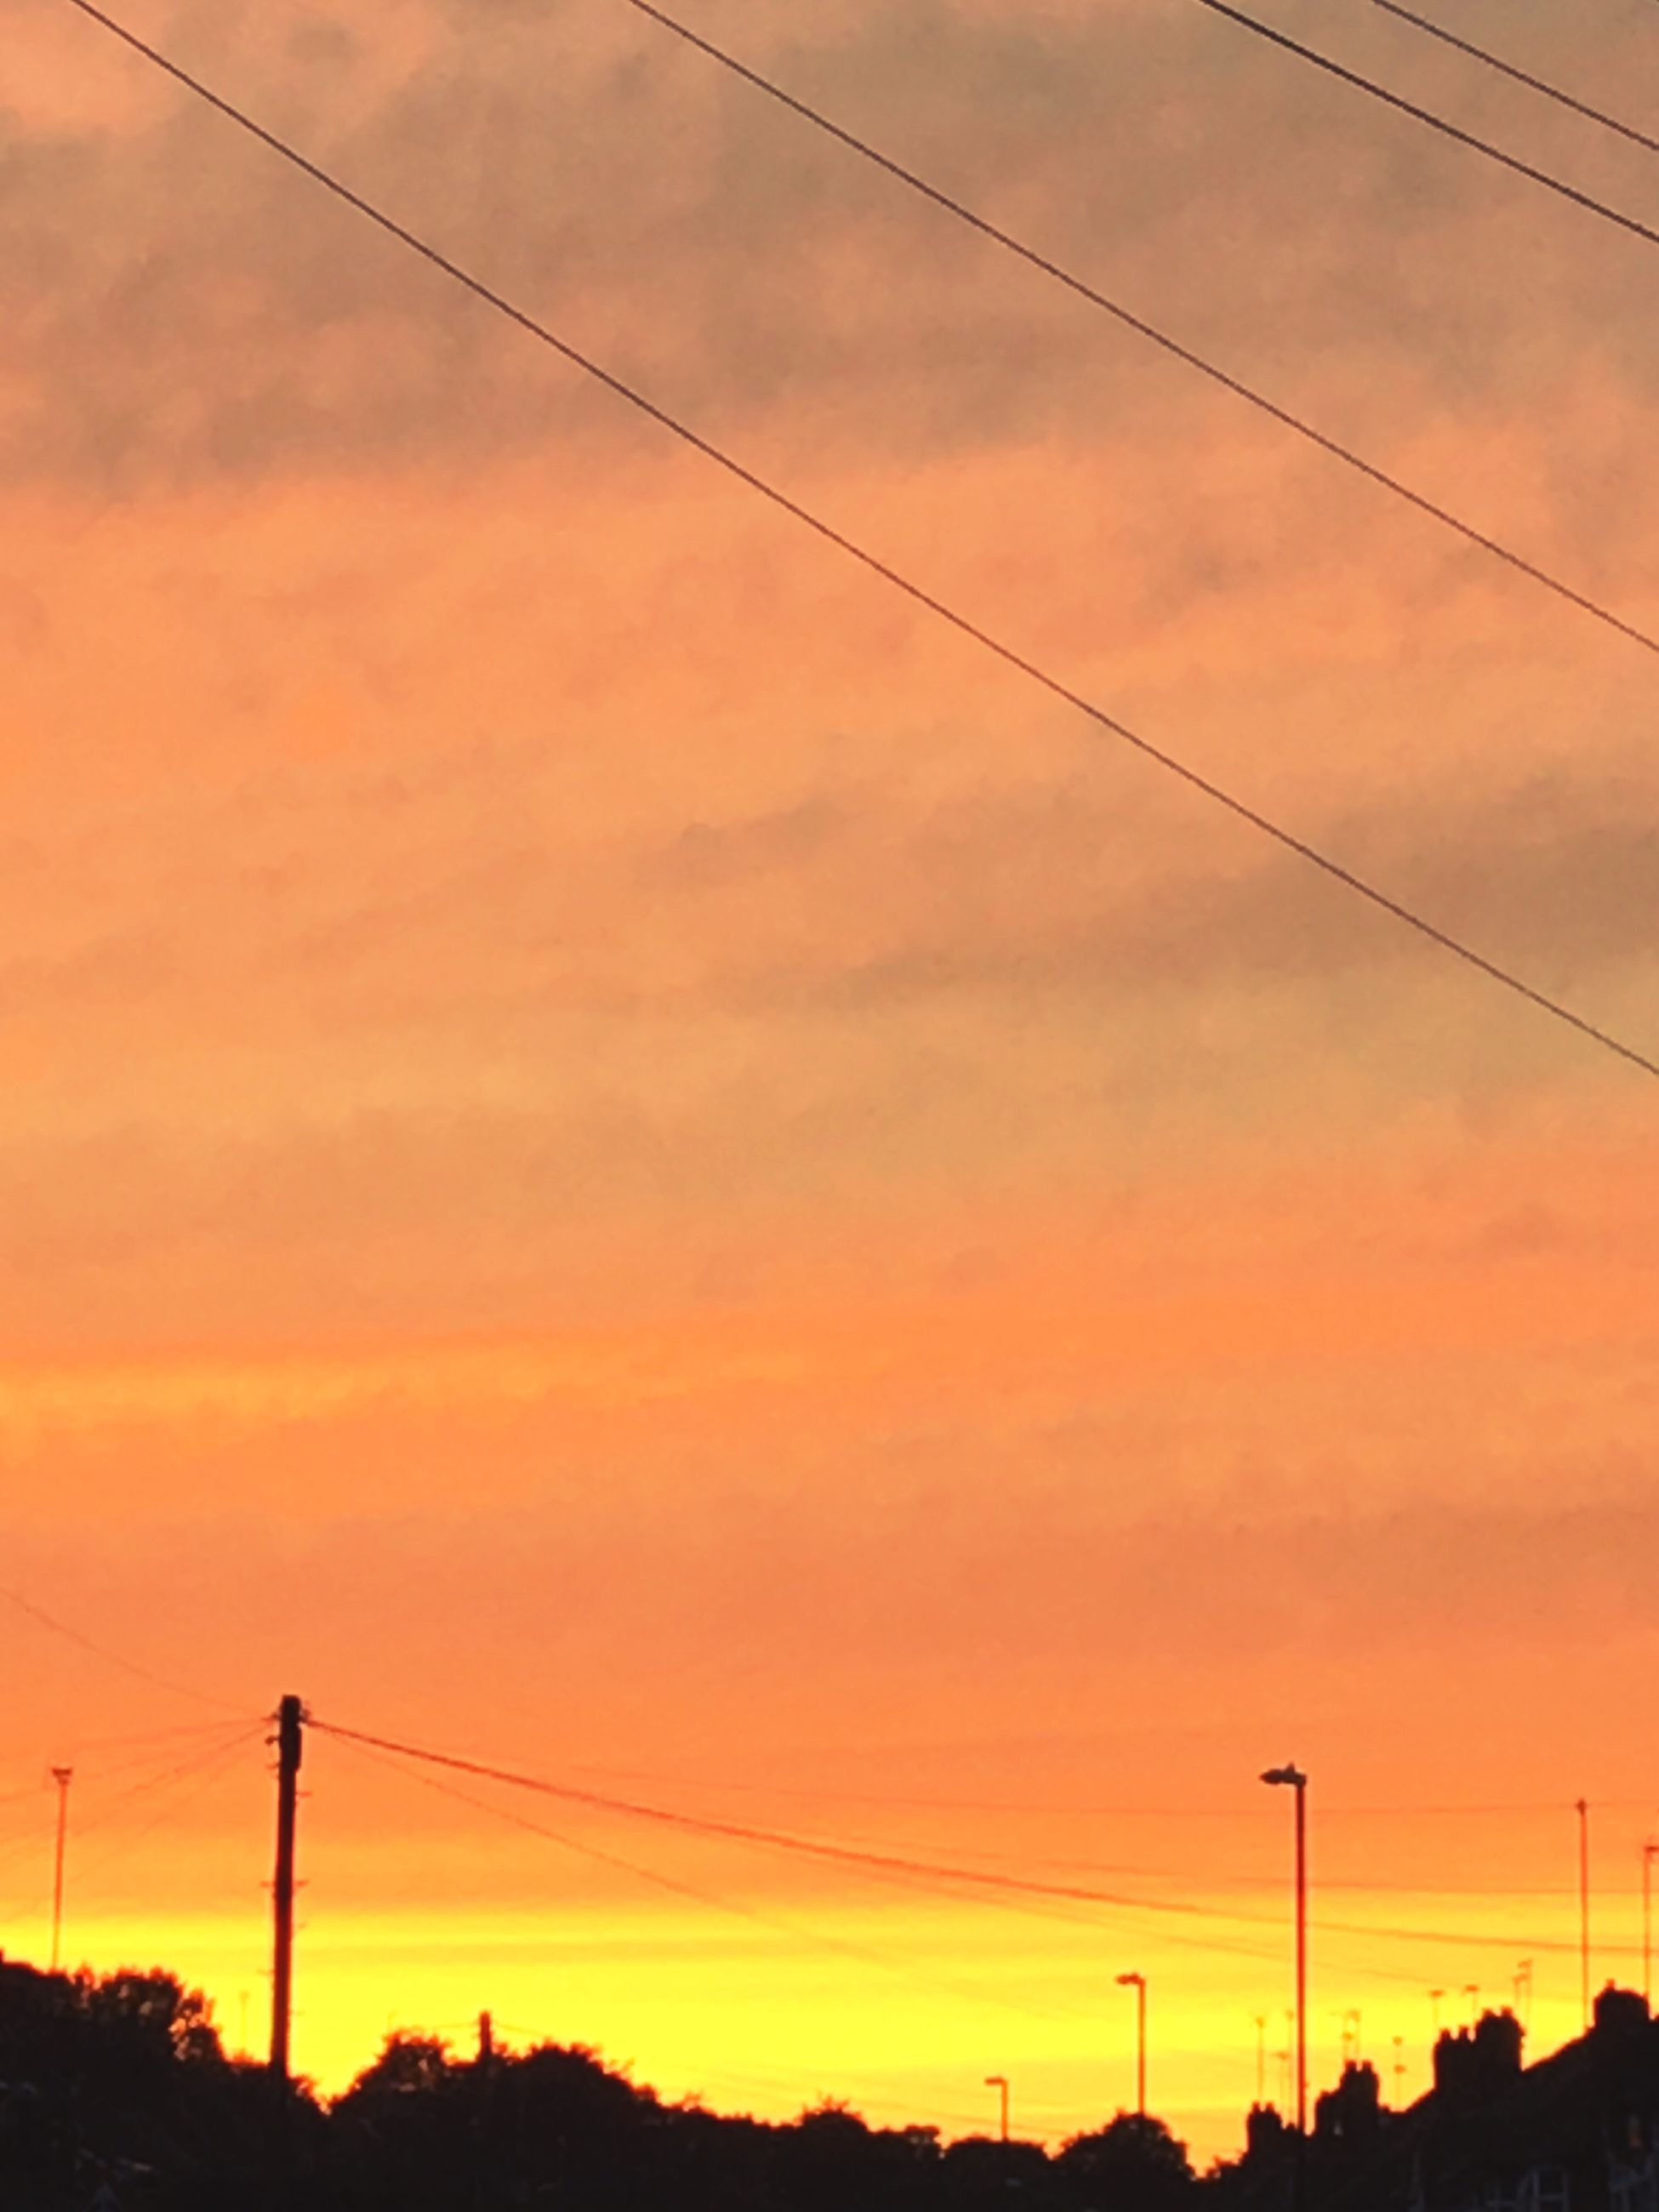 sunset, cable, power line, orange color, silhouette, power supply, electricity pylon, connection, electricity, fuel and power generation, telephone line, no people, nature, sky, cloud - sky, technology, outdoors, beauty in nature, scenics, day